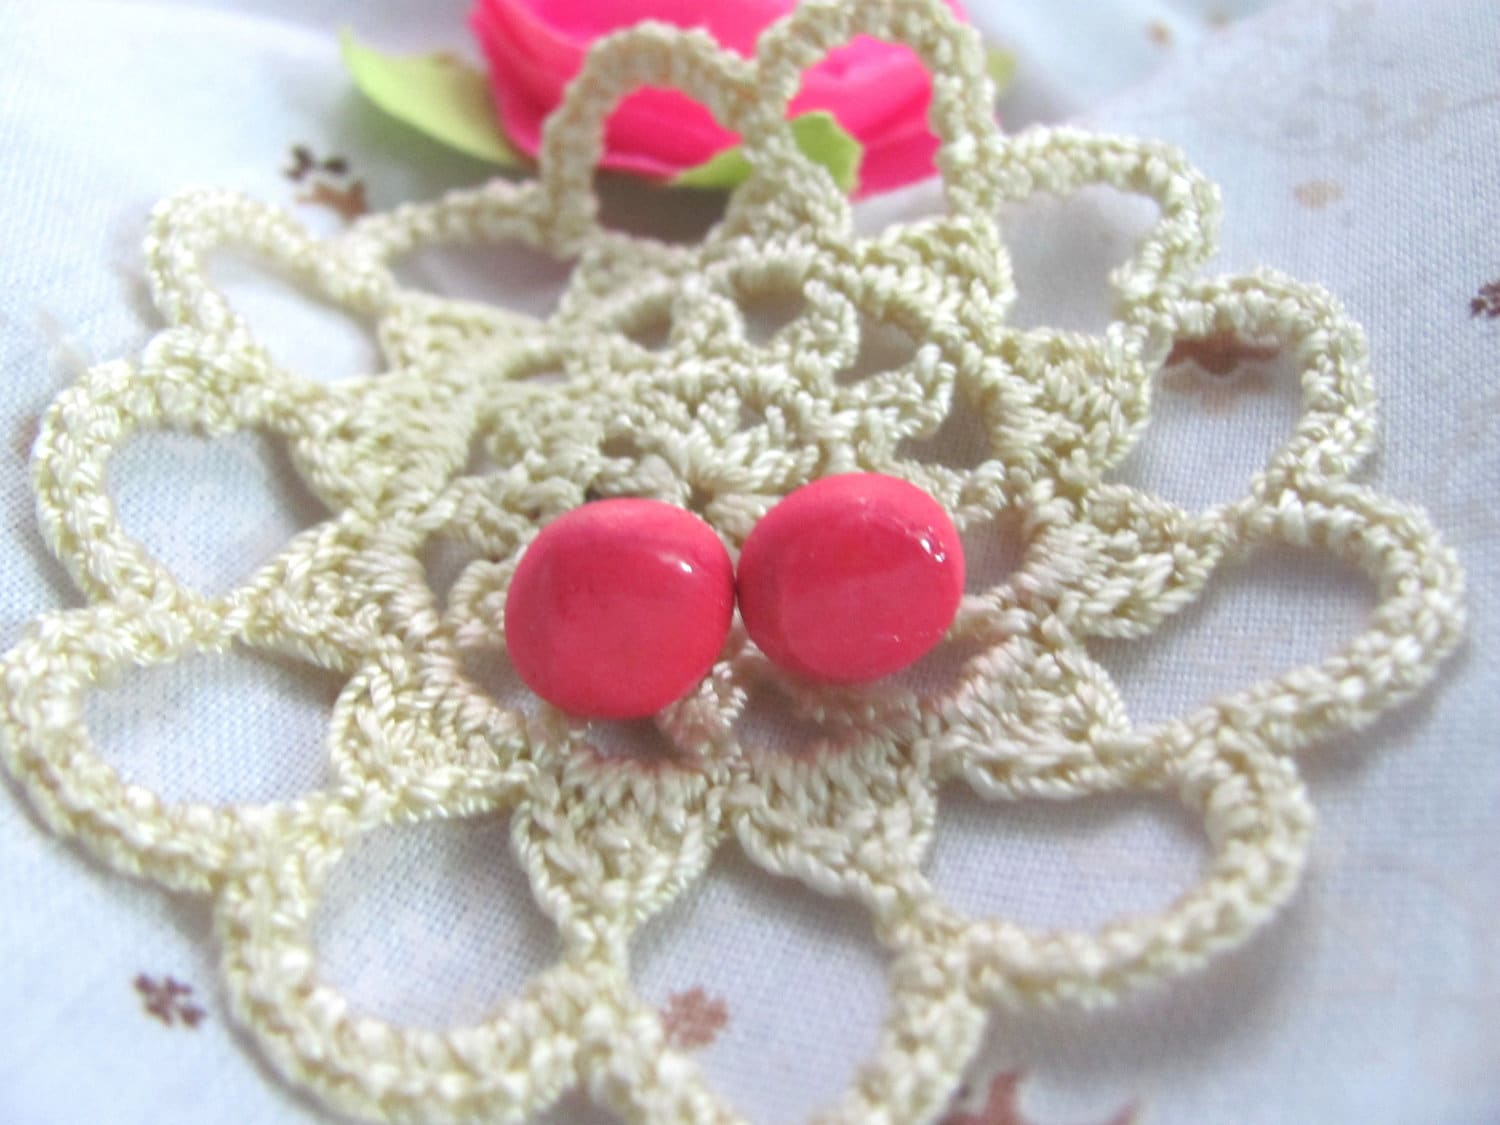 Neon Pink - A pair of round stud earrings